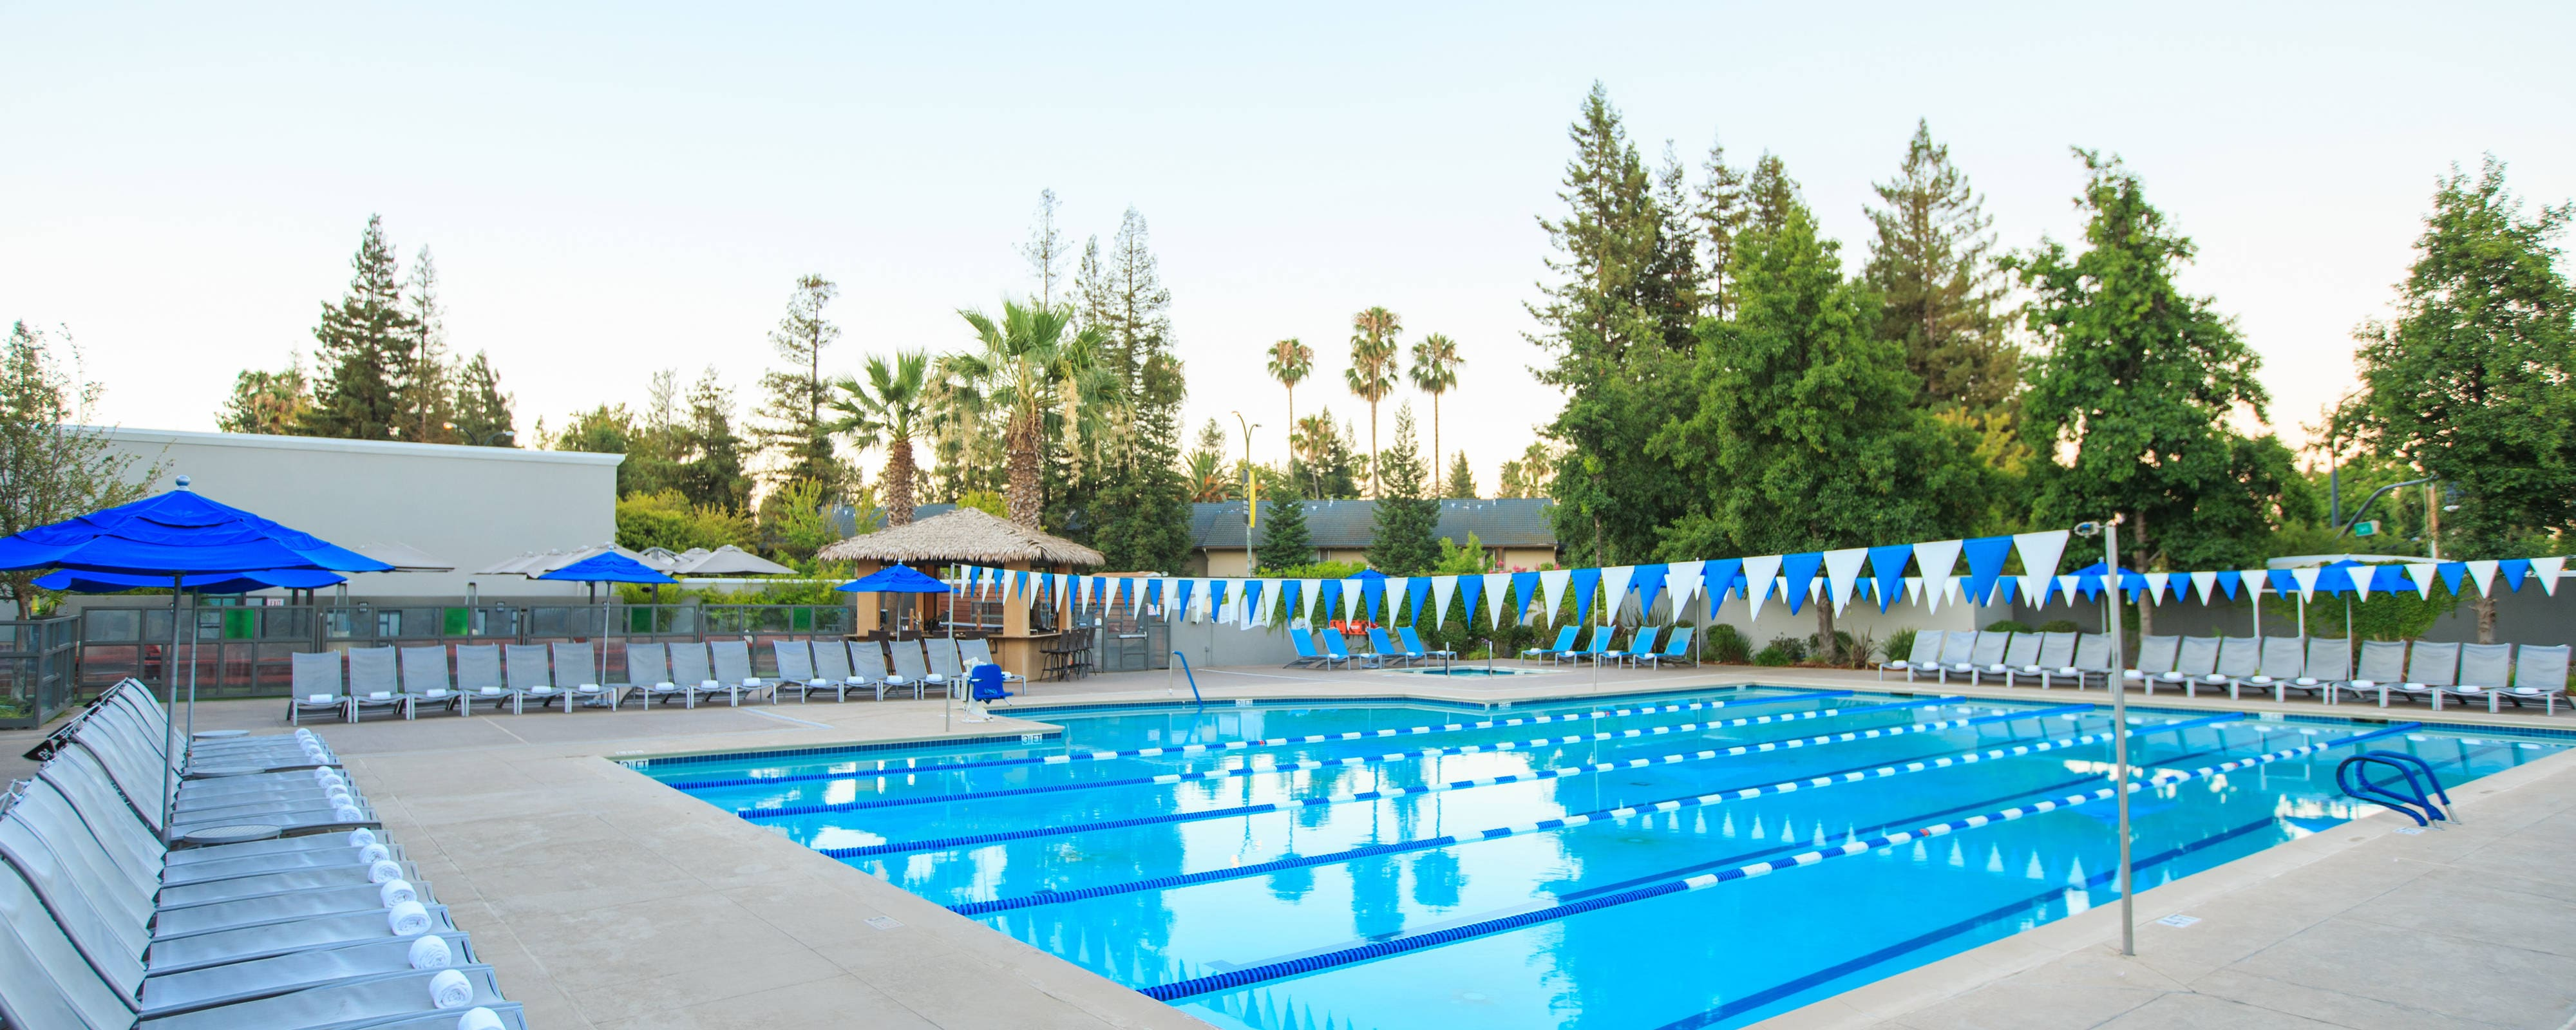 Piscina al aire libre en Walnut Creek